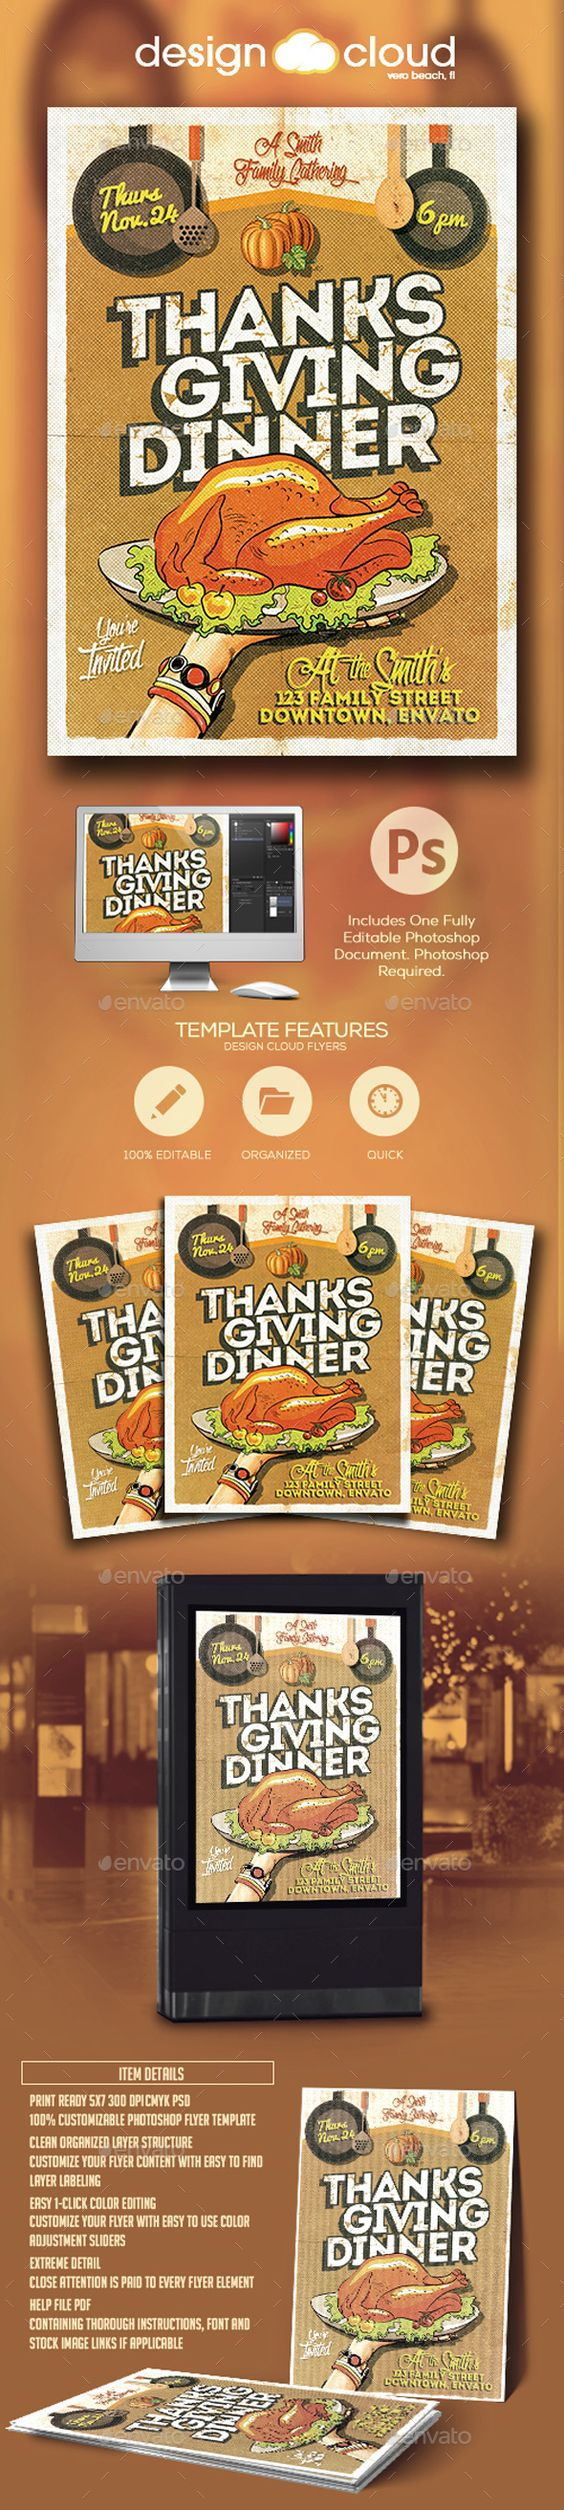 thanksgiving dinner invitation flyer template flyer template thanksgiving dinner invitation flyer template photoshop psd quality retro ➝